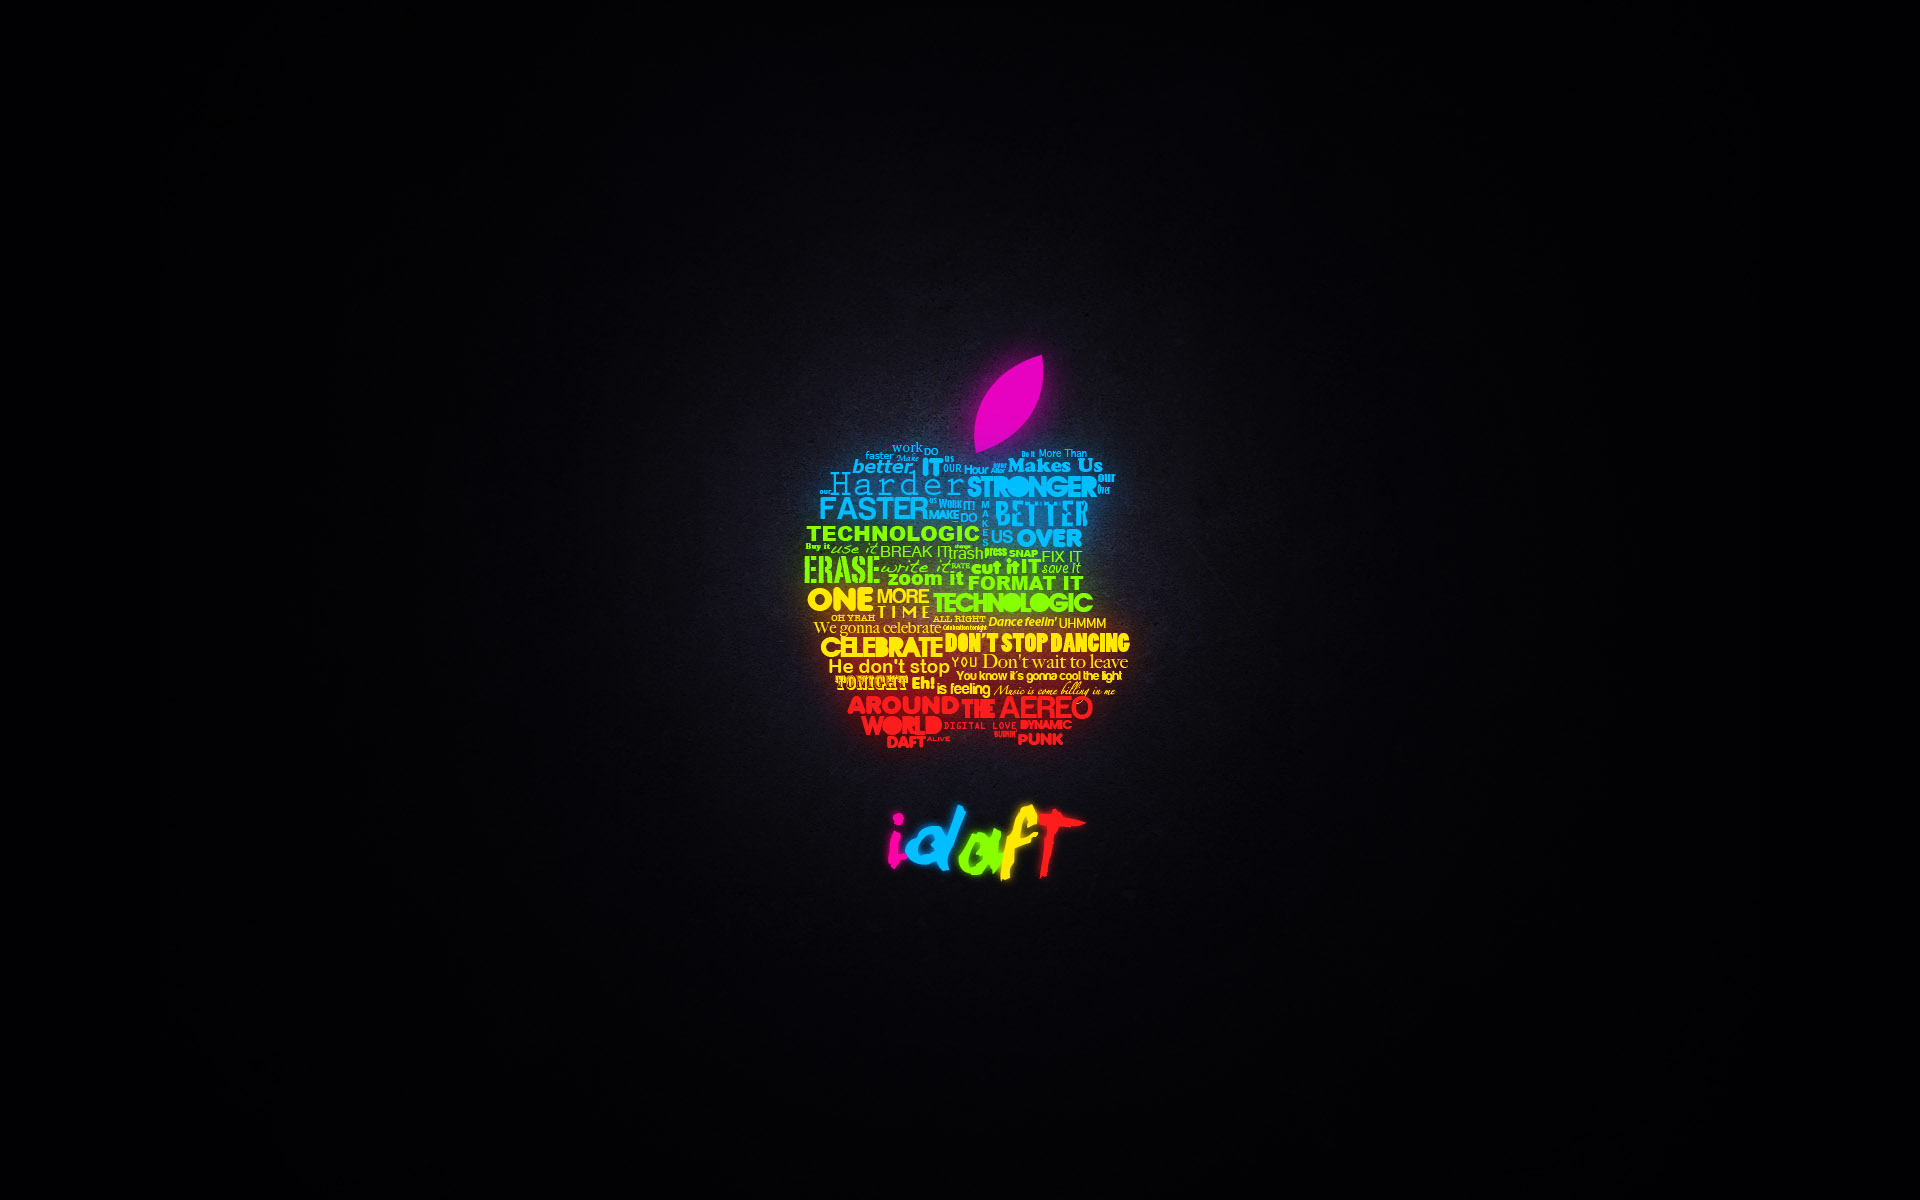 hd apple wallpaper 16744 - desktop wallpapers - system wallpaper